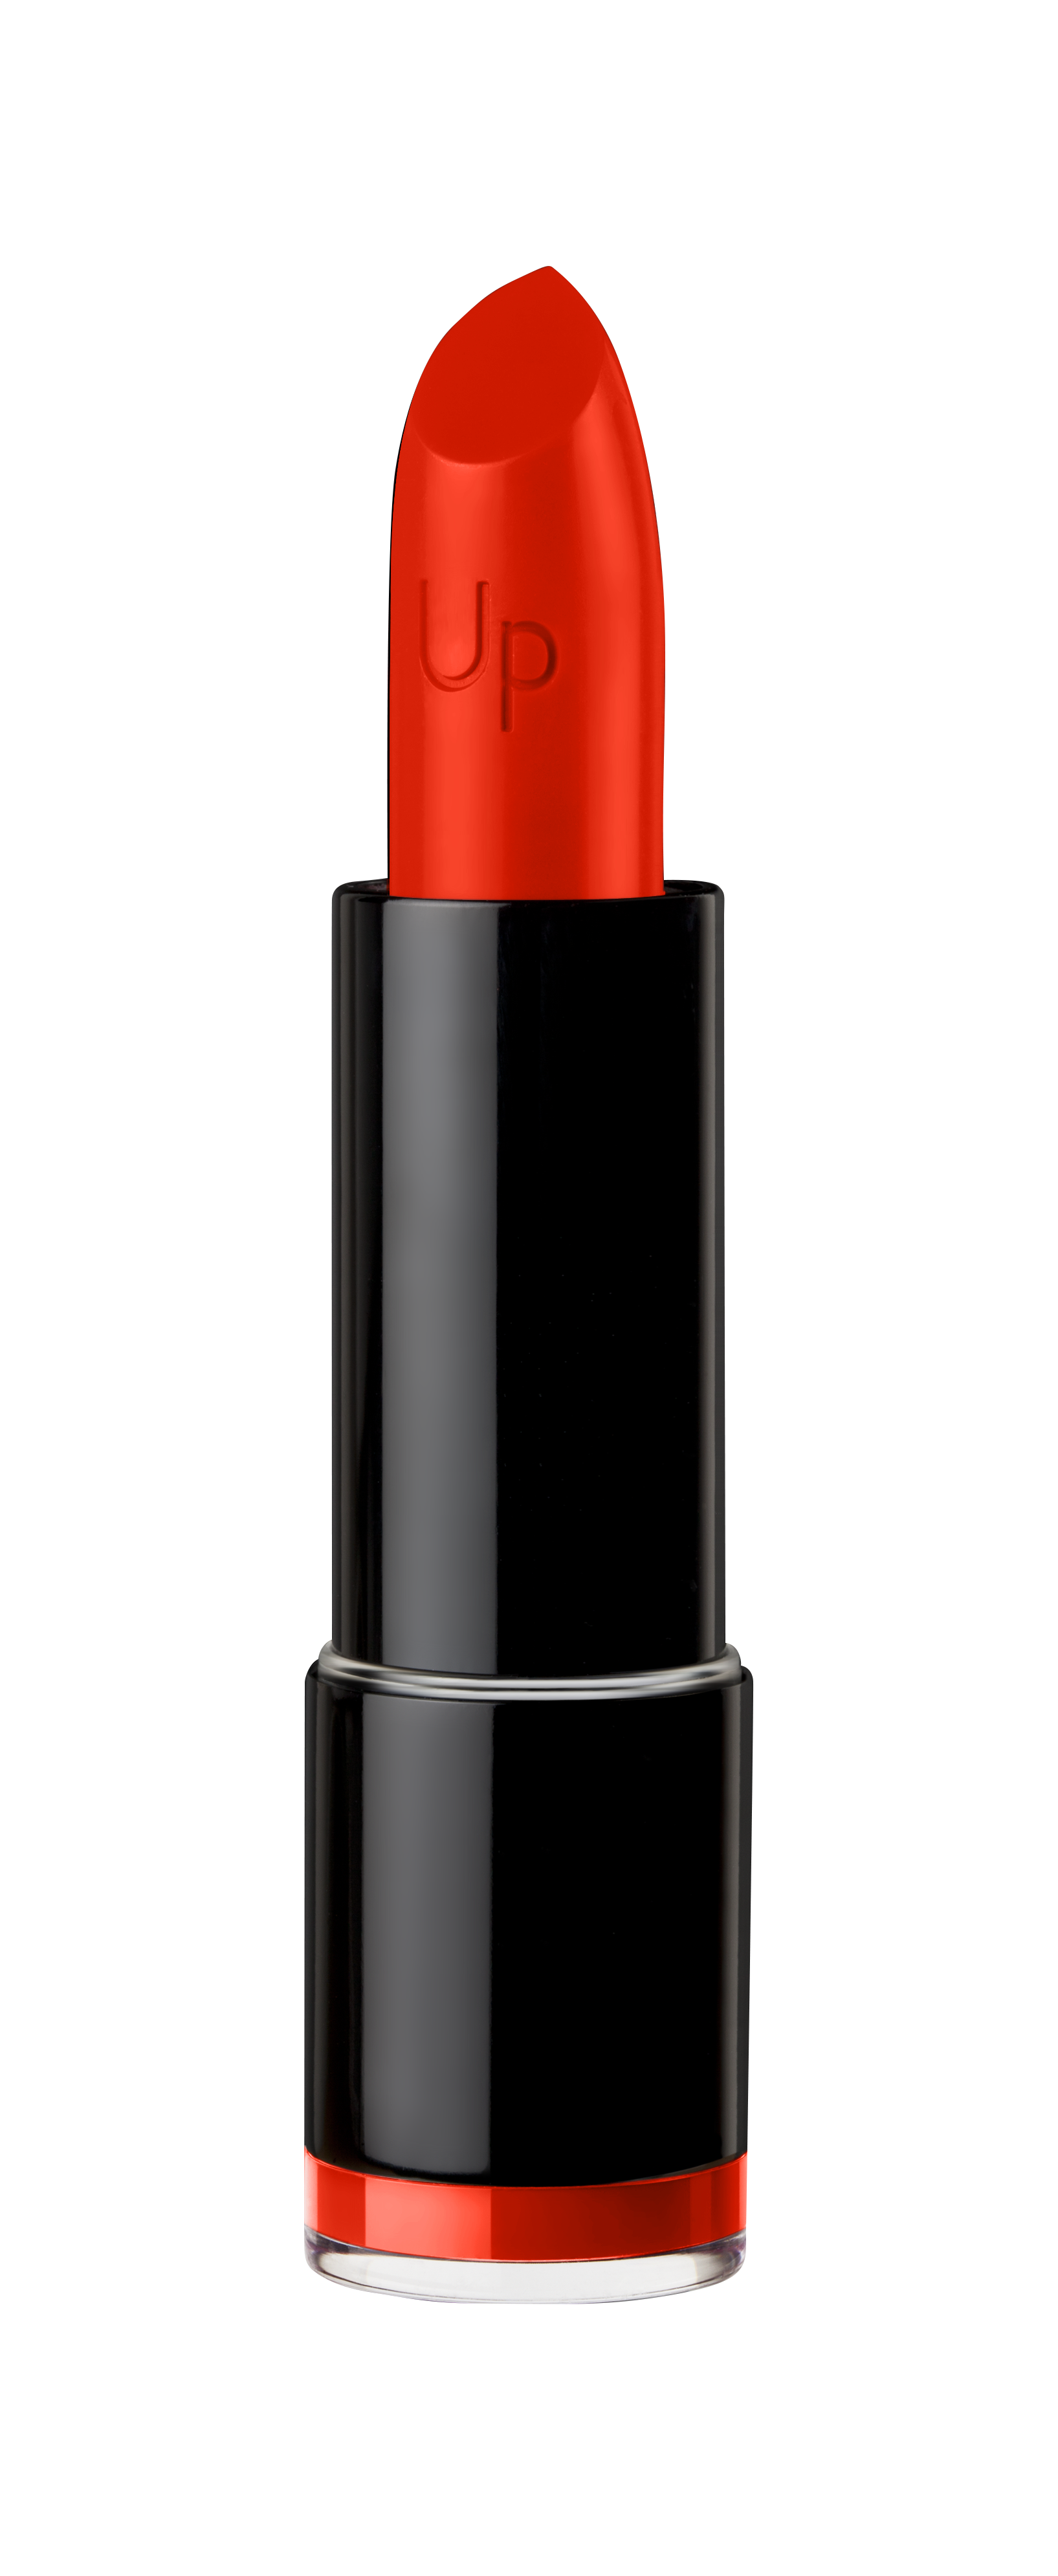 Red lipstick png. Transparent pictures free icons